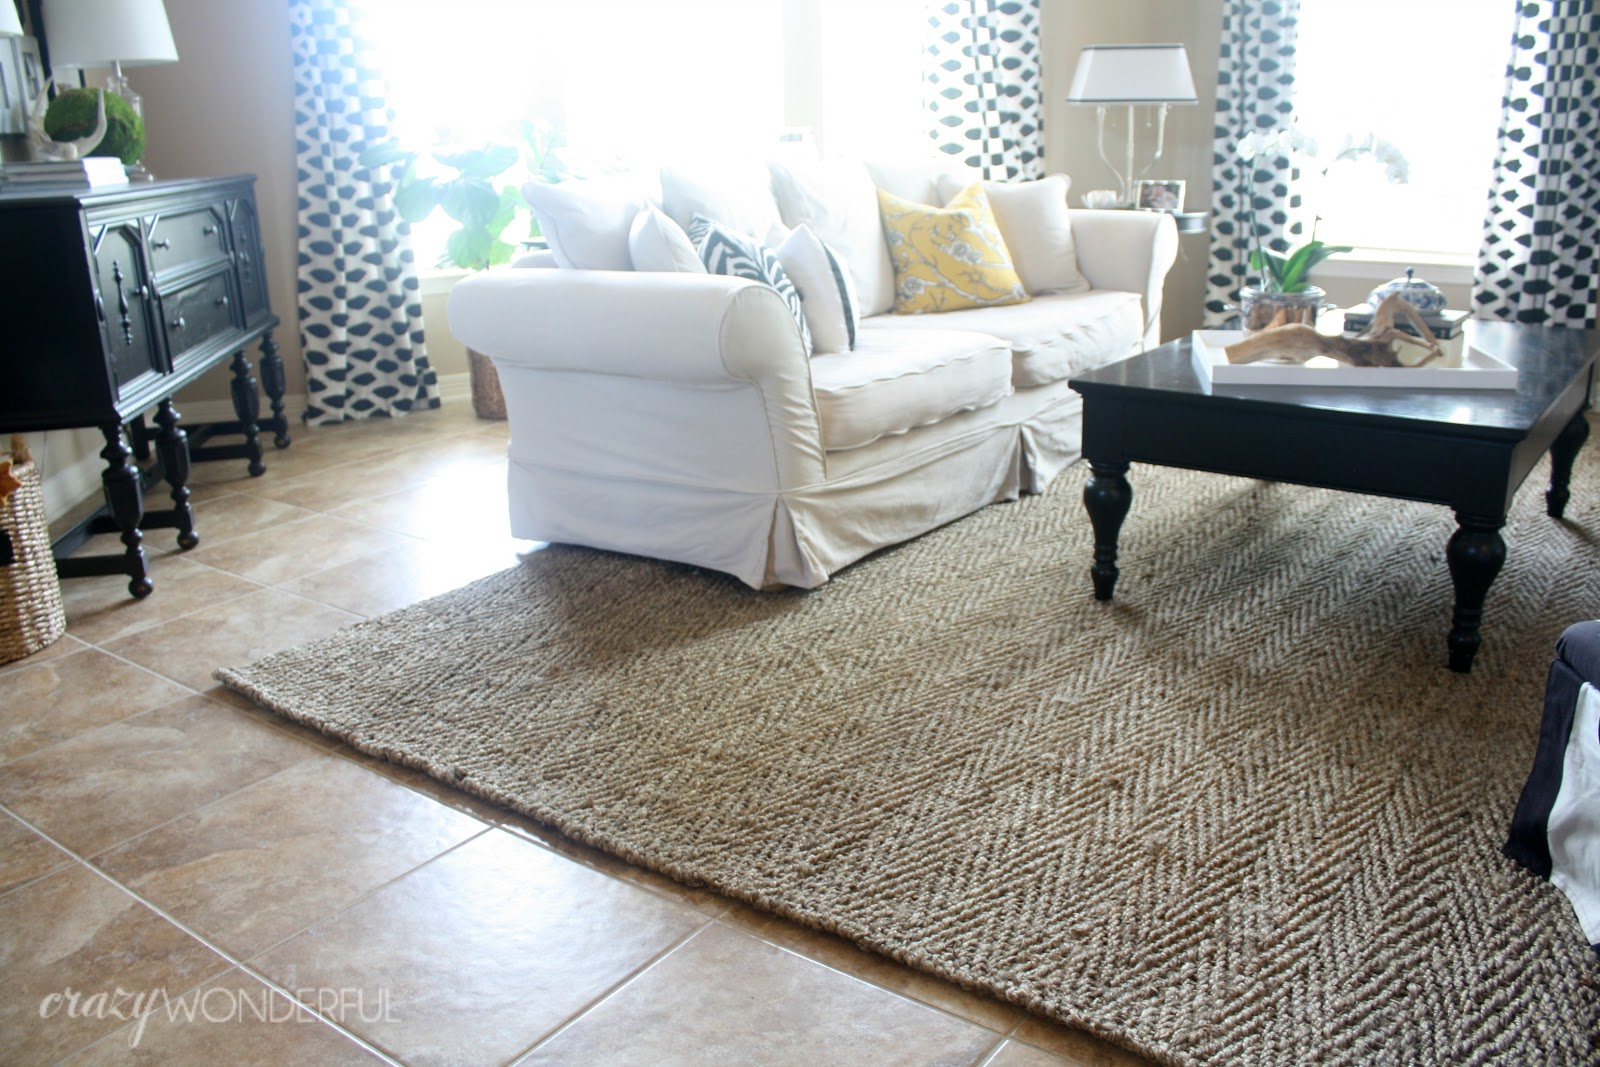 New herringbone jute rug crazy wonderful new herringbone jute rug dailygadgetfo Gallery